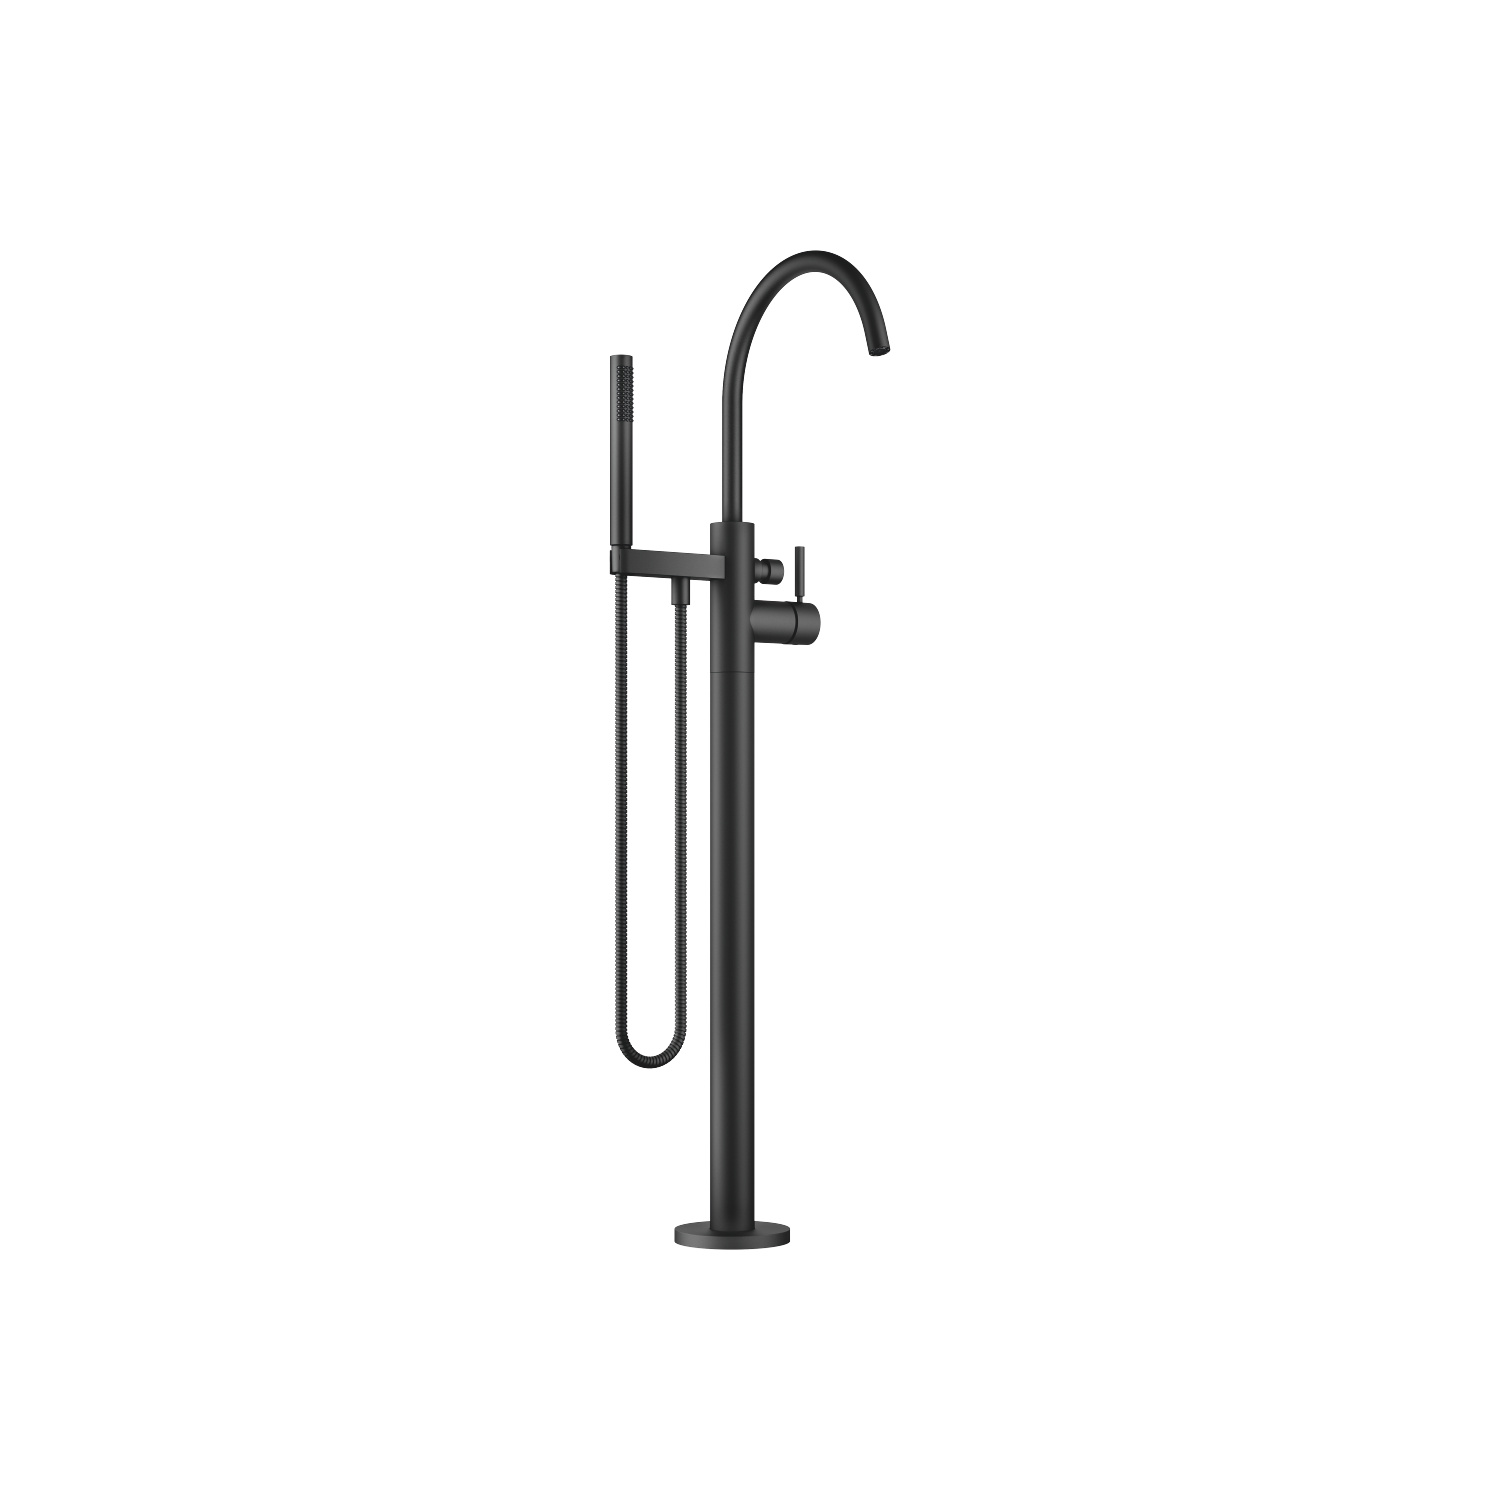 Single-lever bath mixer with stand pipe for free-standing assembly with hand shower set - matt black